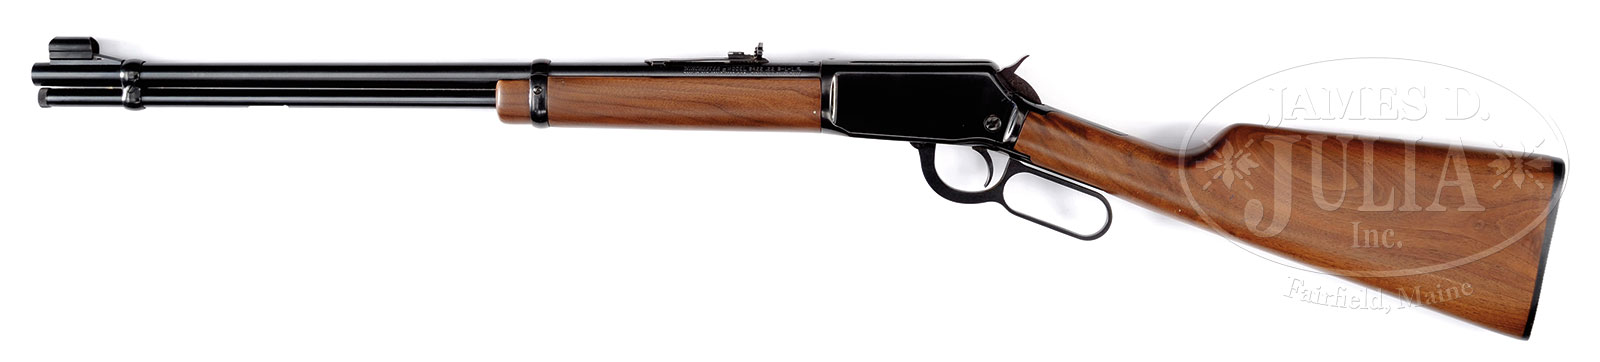 winchester 94 22 lever